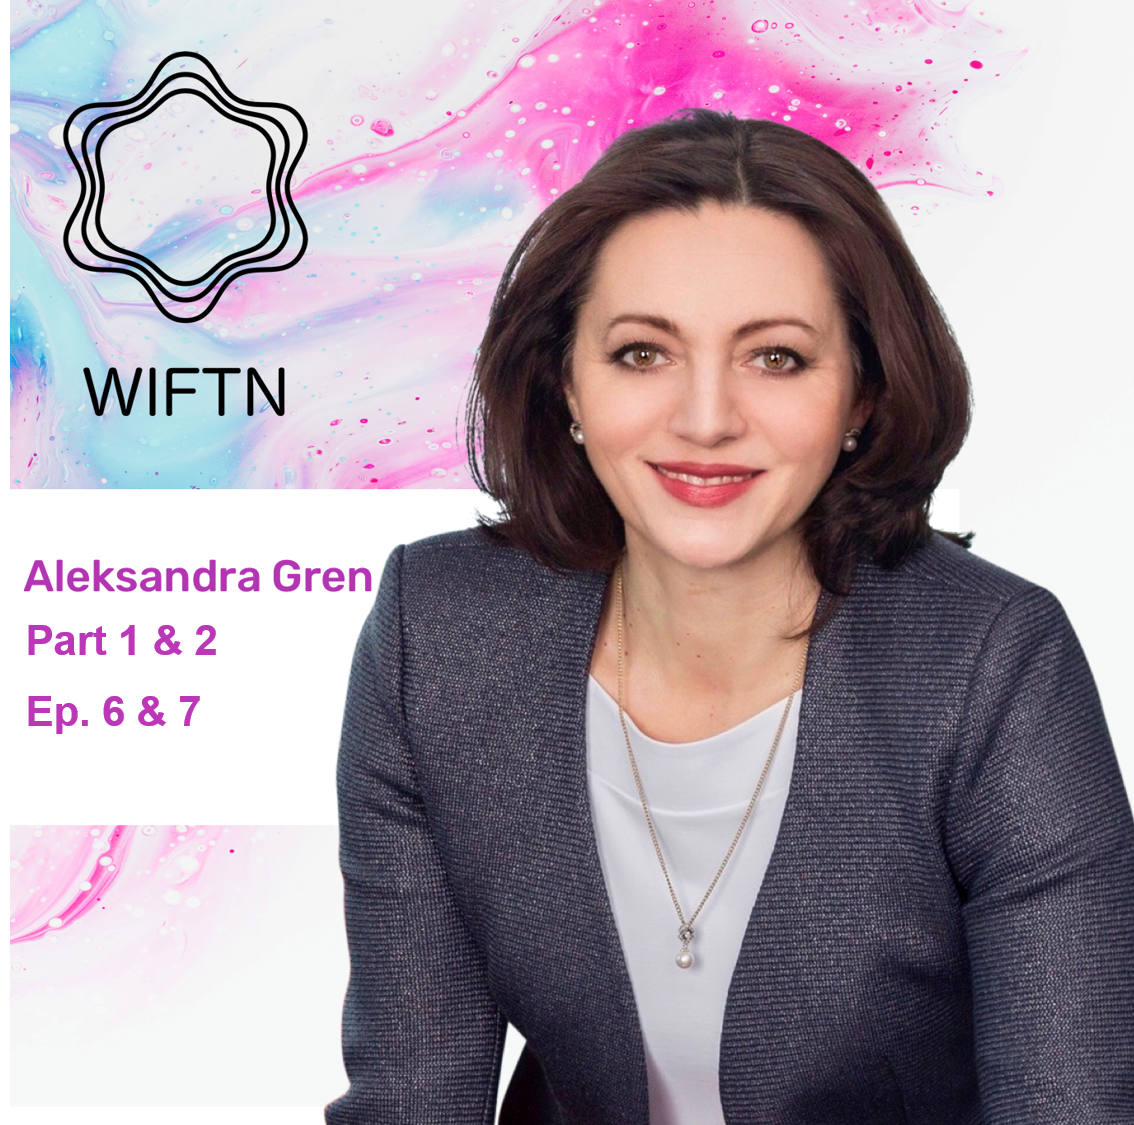 Ep. 6 & 7Aleksandra Gren - Aleksandra Gren has nearly 20 years of experience in the financial technology sector in Europe, the Middle East and Africa. Today Aleks is the country manager for Fiserv Poland. Aleks is a truly inspirational speaker. What struck us most in our interview with Aleks was her passion for giving back and championing the cause of empowering people and careers through education. In 2018 Aleks was the winner of the Global Women Leaders Award from Goldman Sachs and Fortune Magazine. Aleks has a B.A. in International Relations from the University of British Columbia in Vancouver and an M.Sc. in Policy Making from London School of Economics in LondonLink to episode 6Link to episode 7